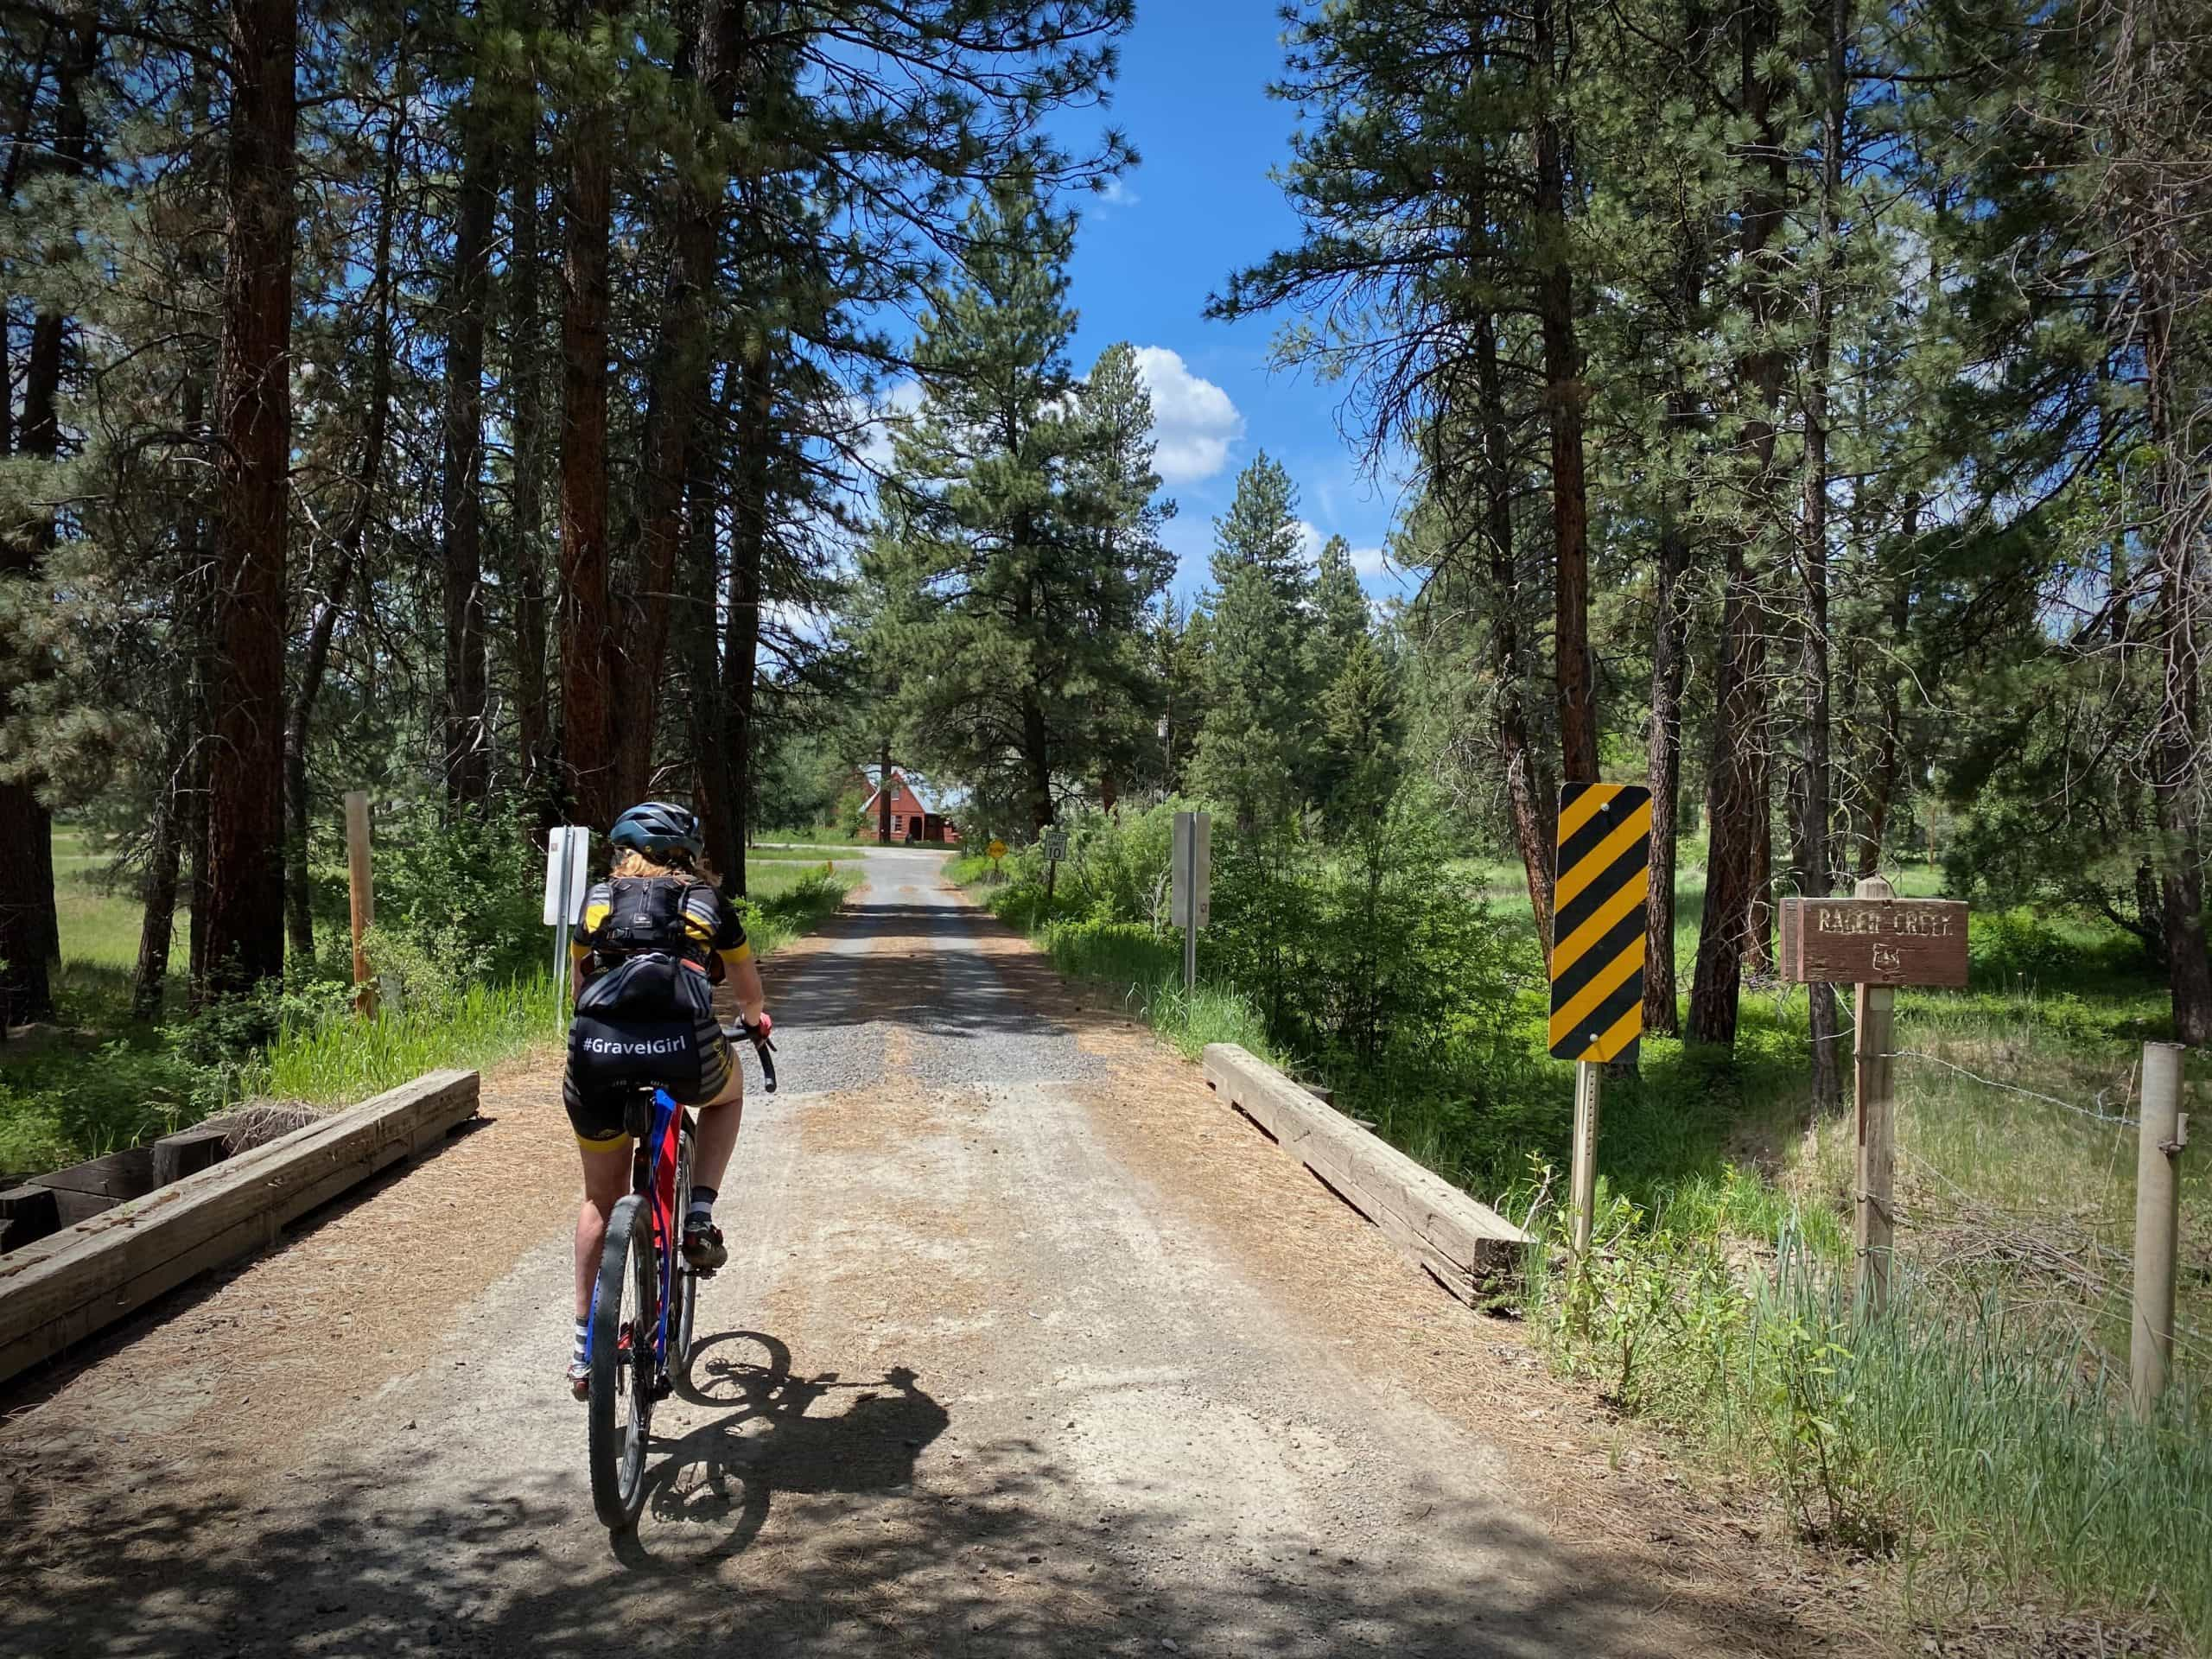 Cyclist approaching the Rager Ranger Station in the Ochoco National Forest.